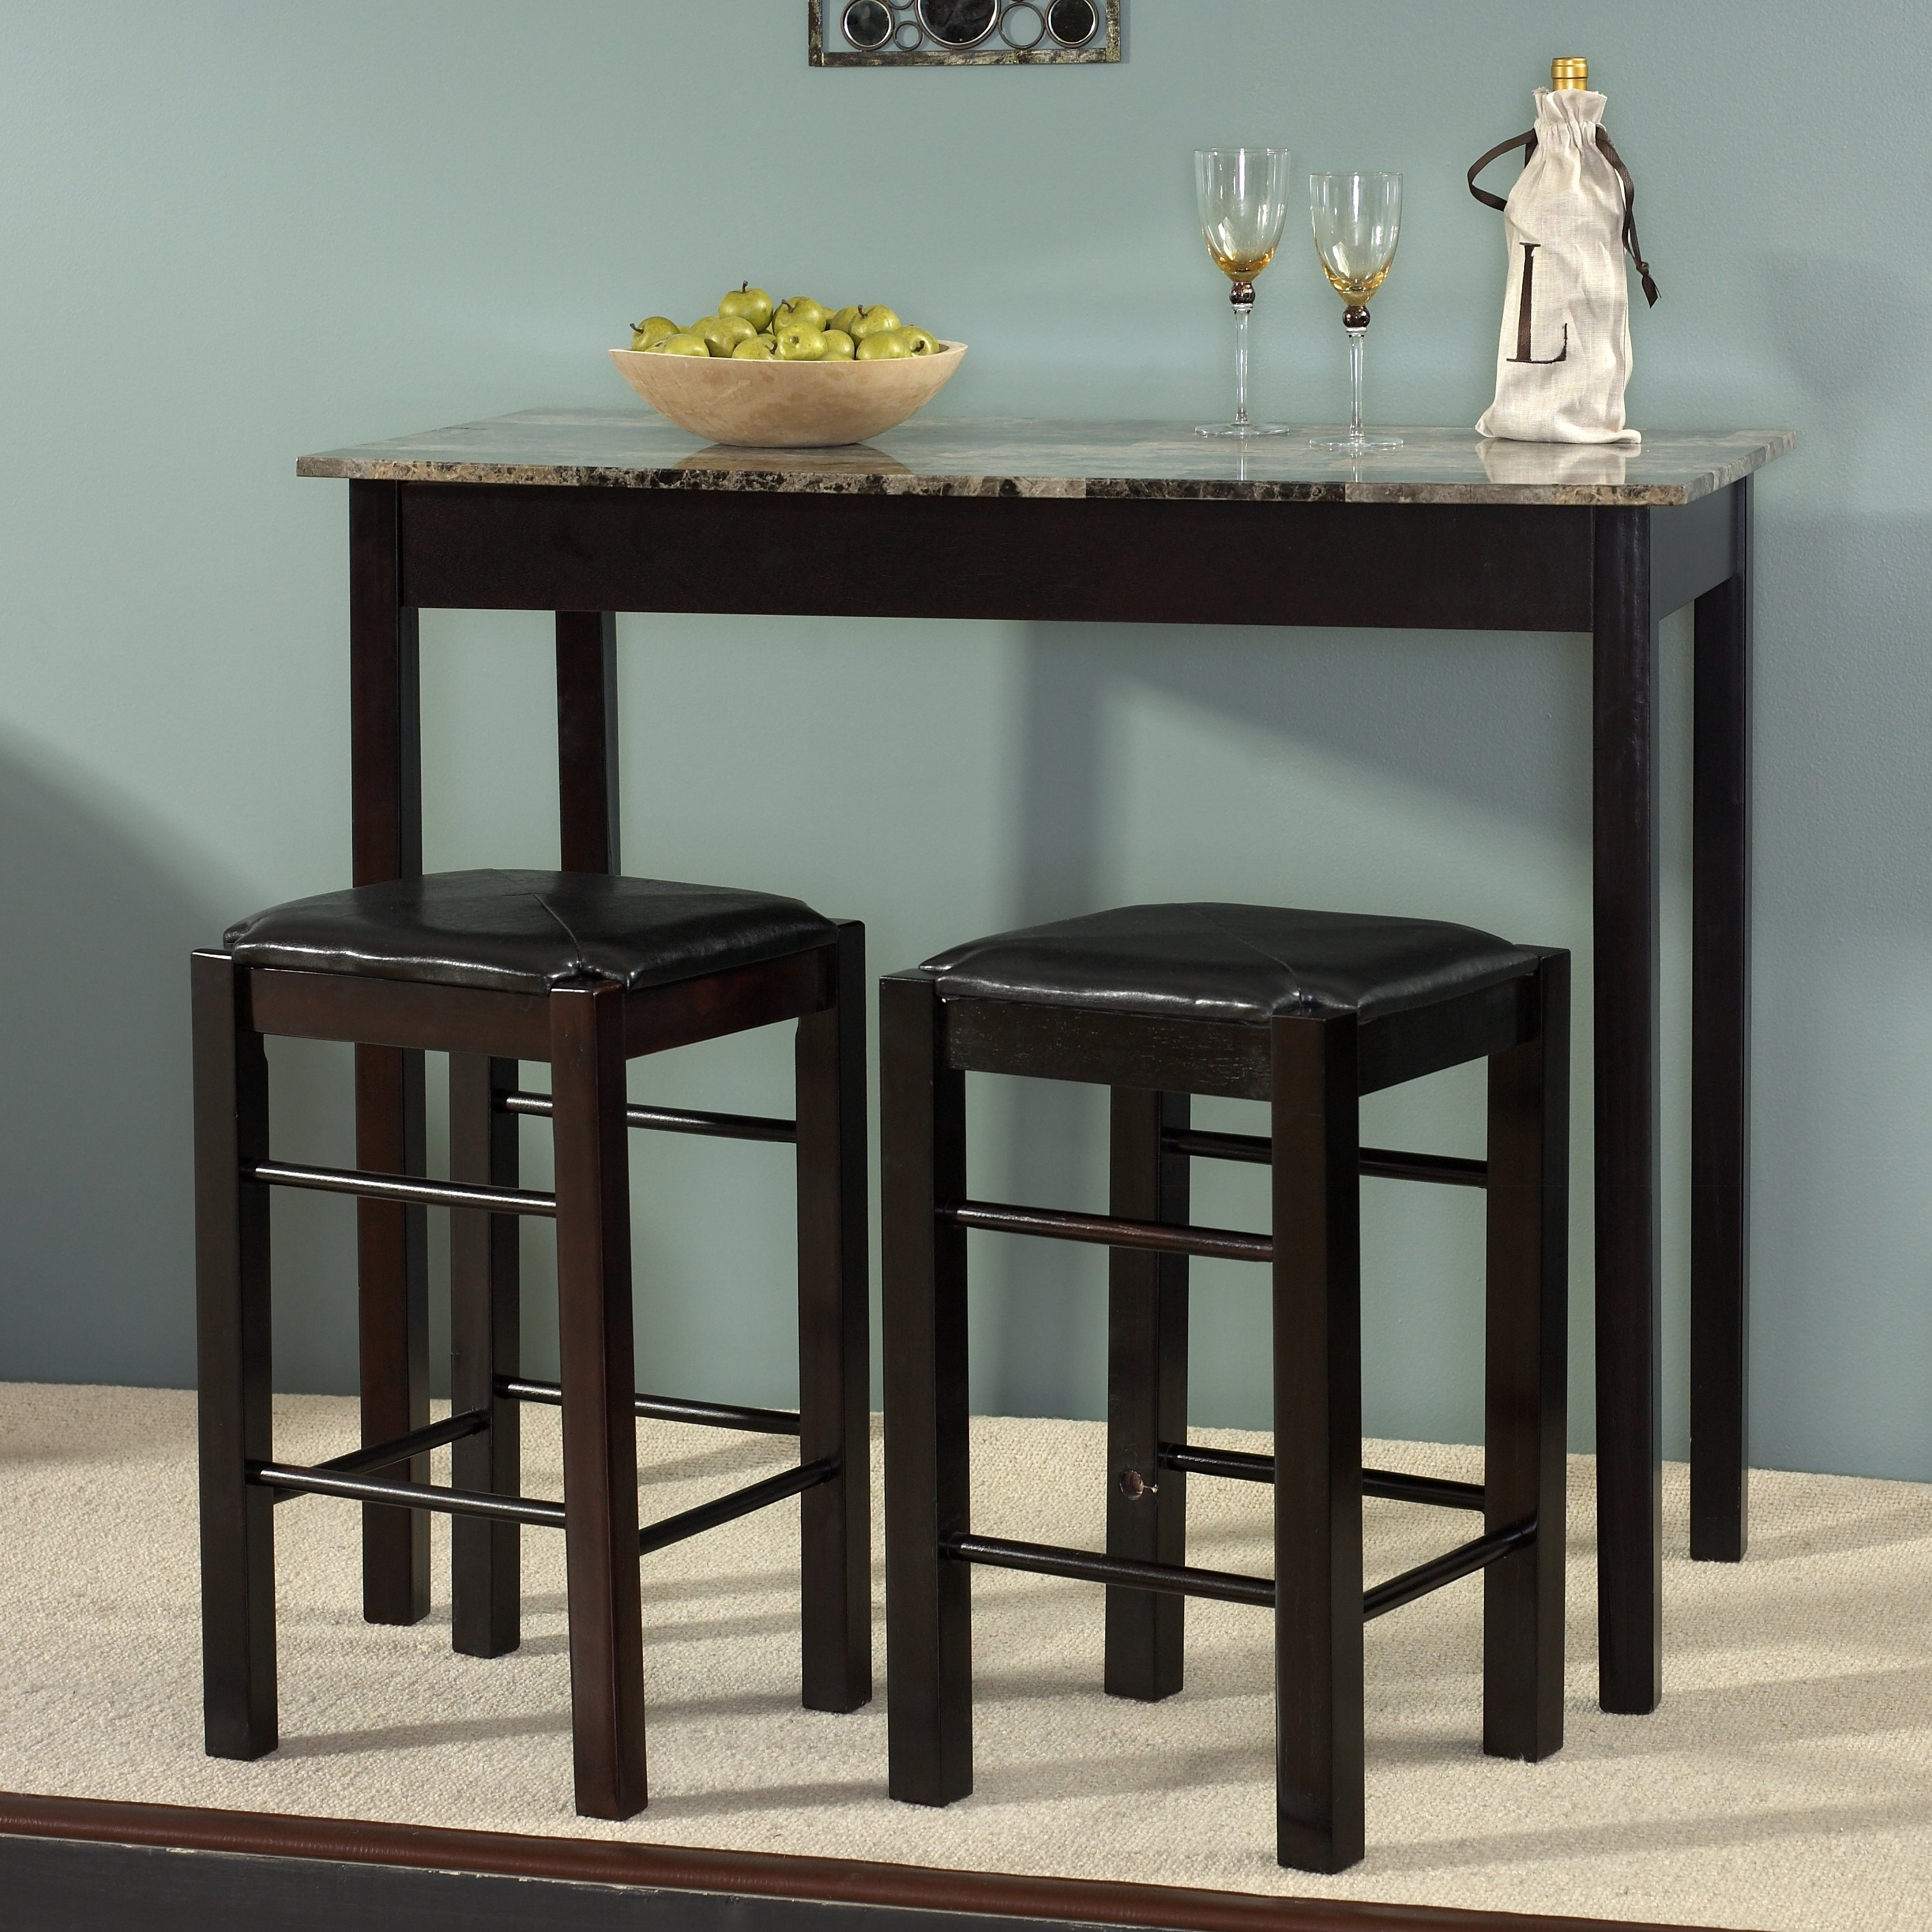 Sheetz 3 Piece Counter Height Dining Set In Most Current Sheetz 3 Piece Counter Height Dining Sets (View 2 of 20)